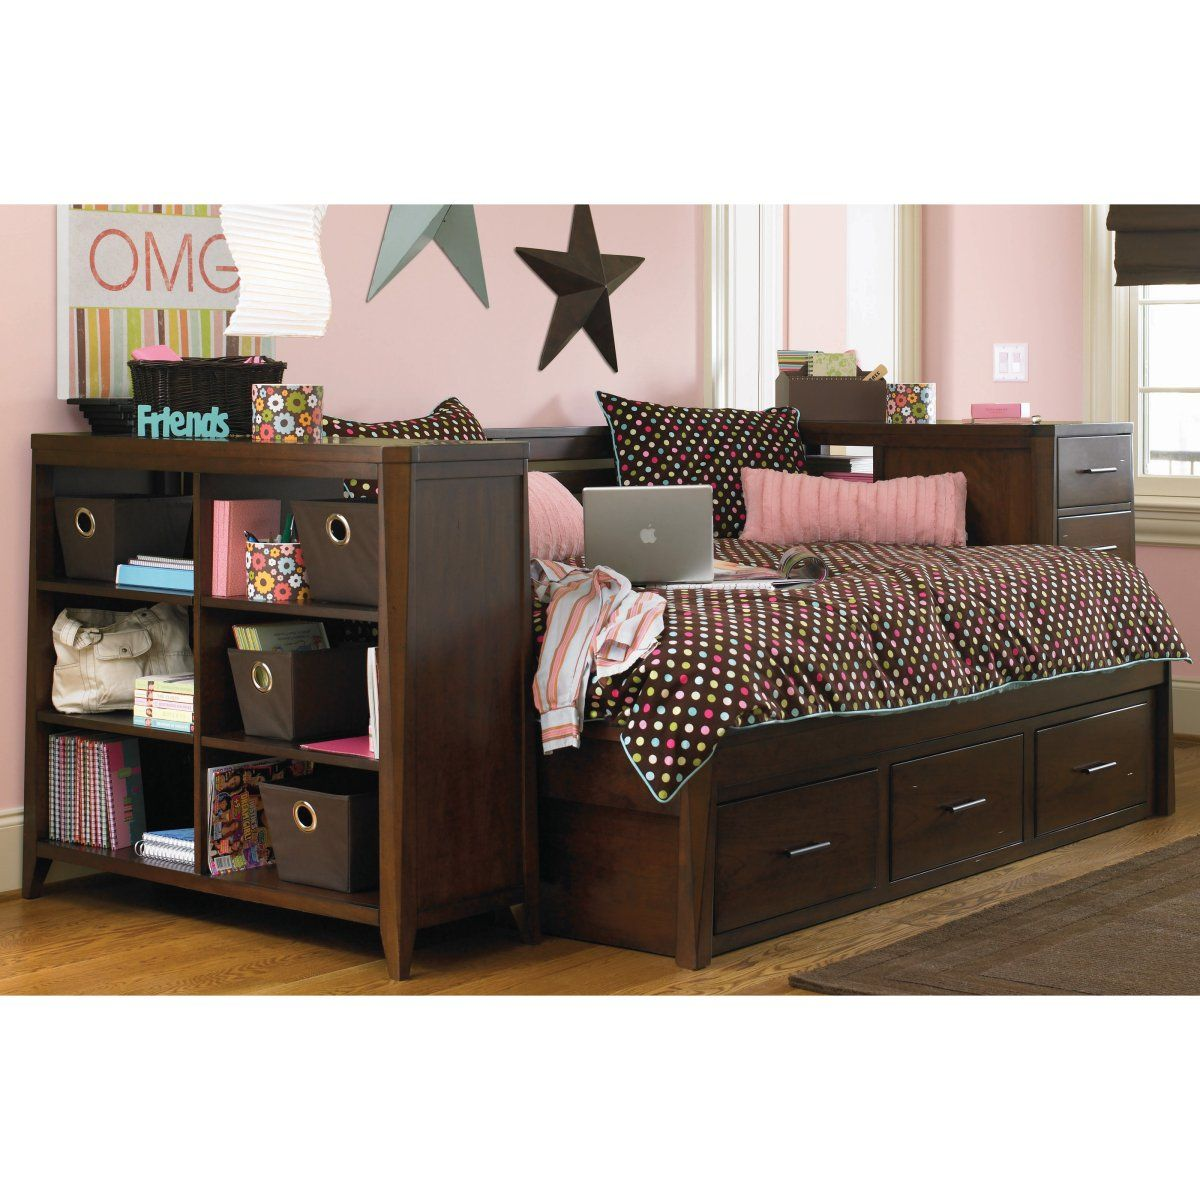 Kendall Storage Daybed Full Gusu room Pinterest Daybed Full